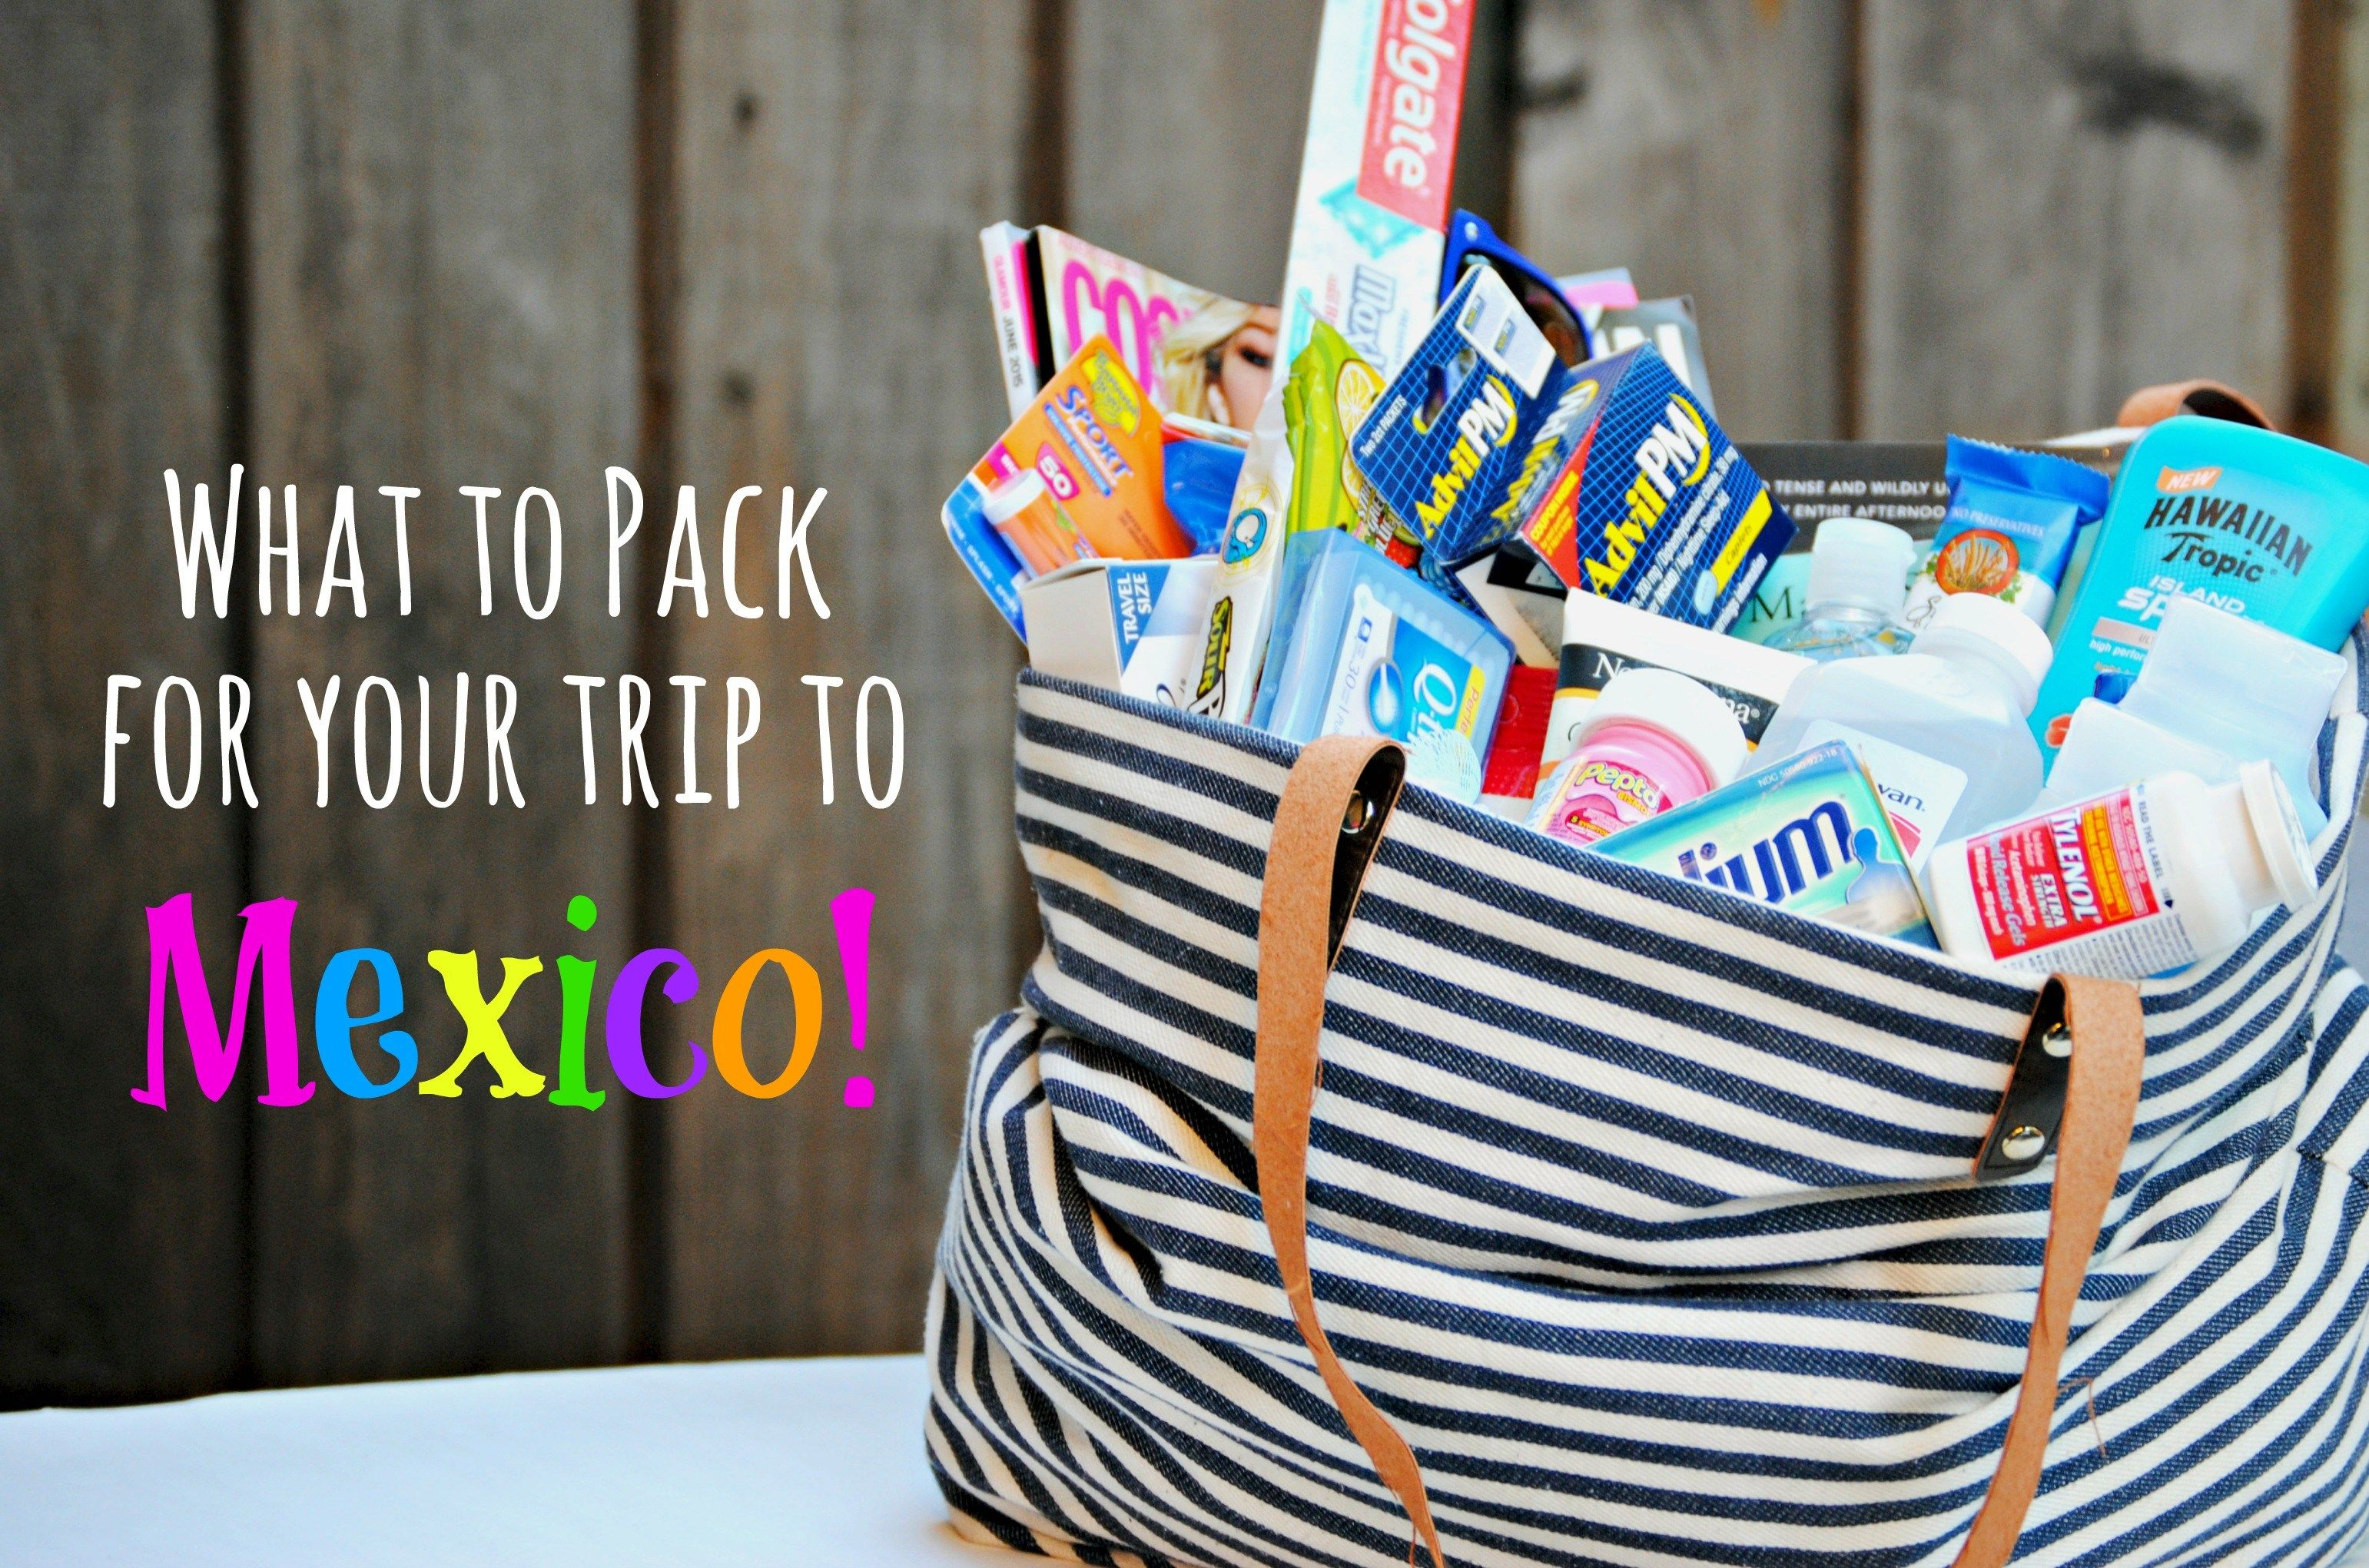 what to pack for your trip to mexico // what you should bring on